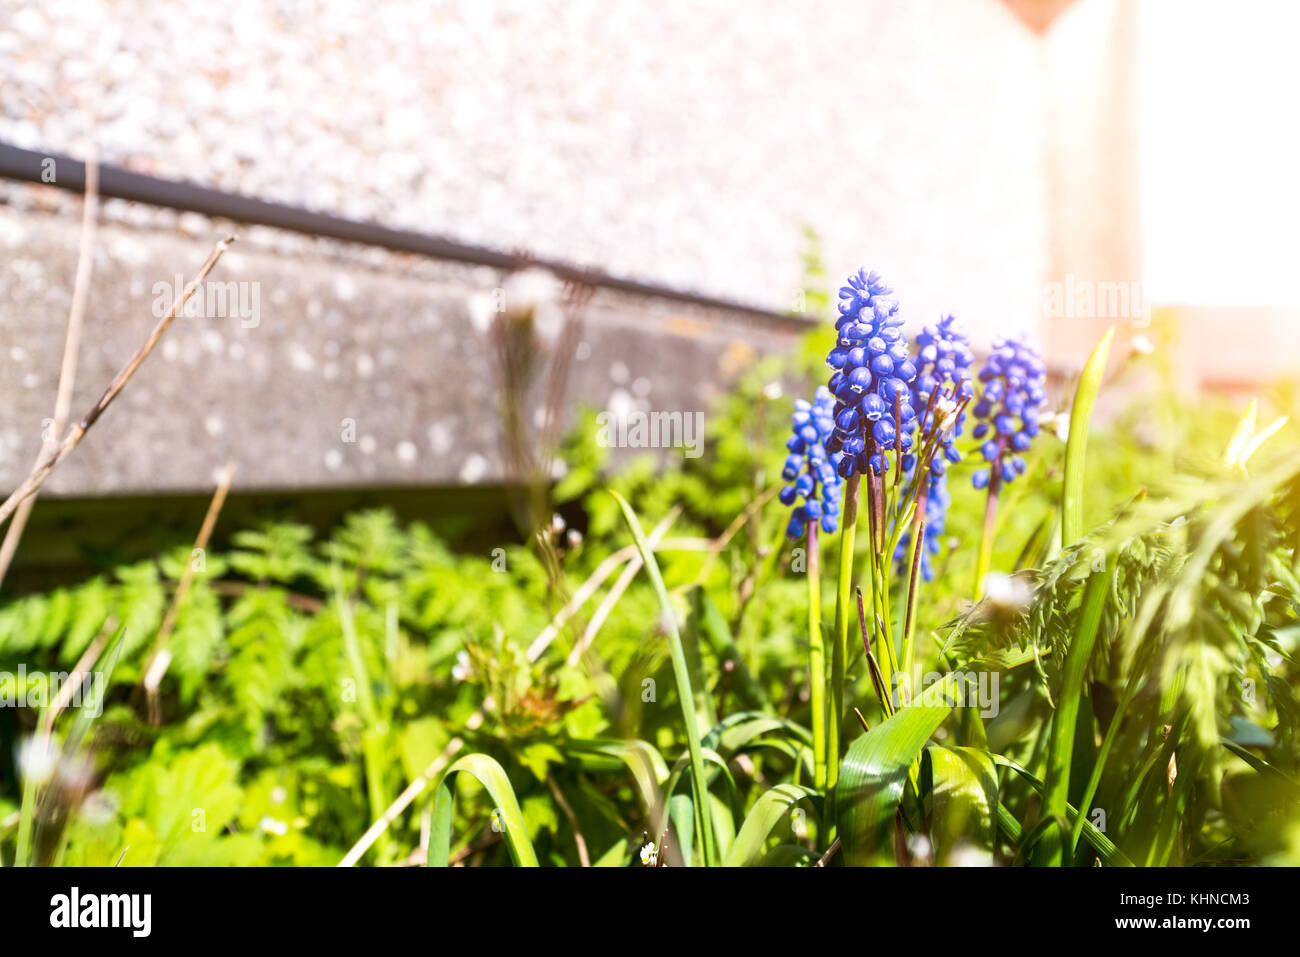 Bluebell flower in a garden in the spring with blooming blue flowers in the sun - Stock Image